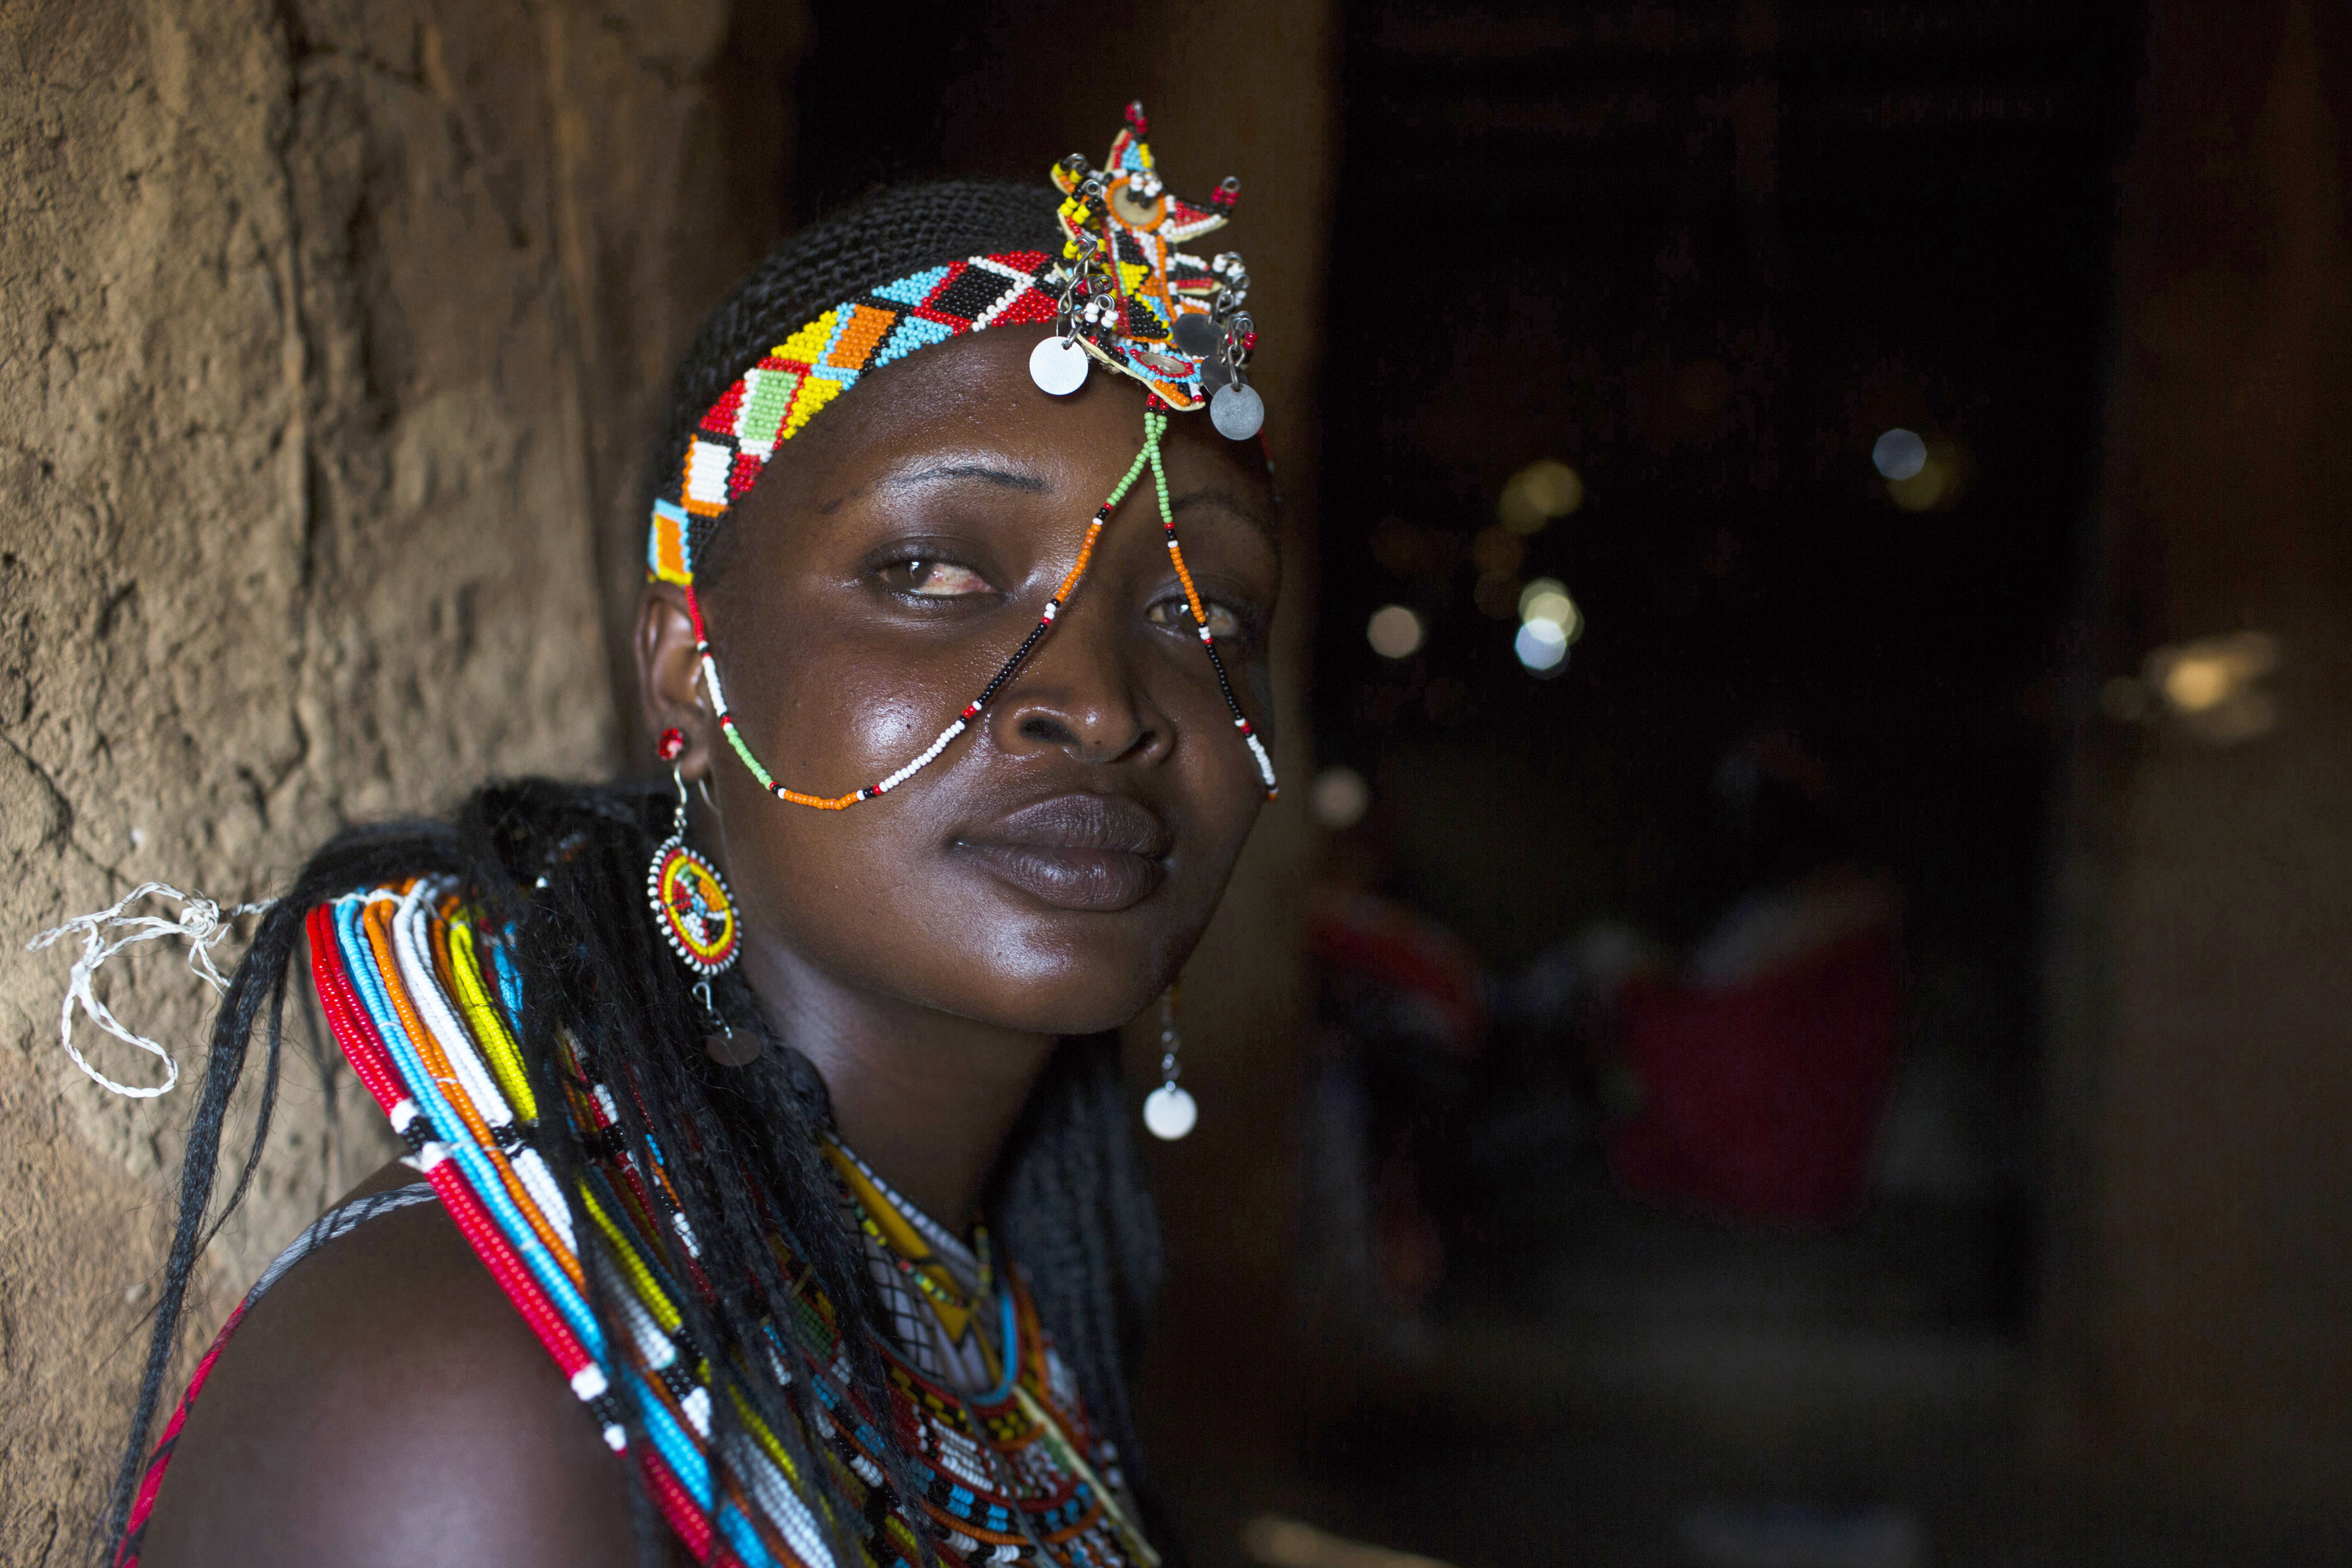 Judi's story: How I escaped child marriage in Kenya